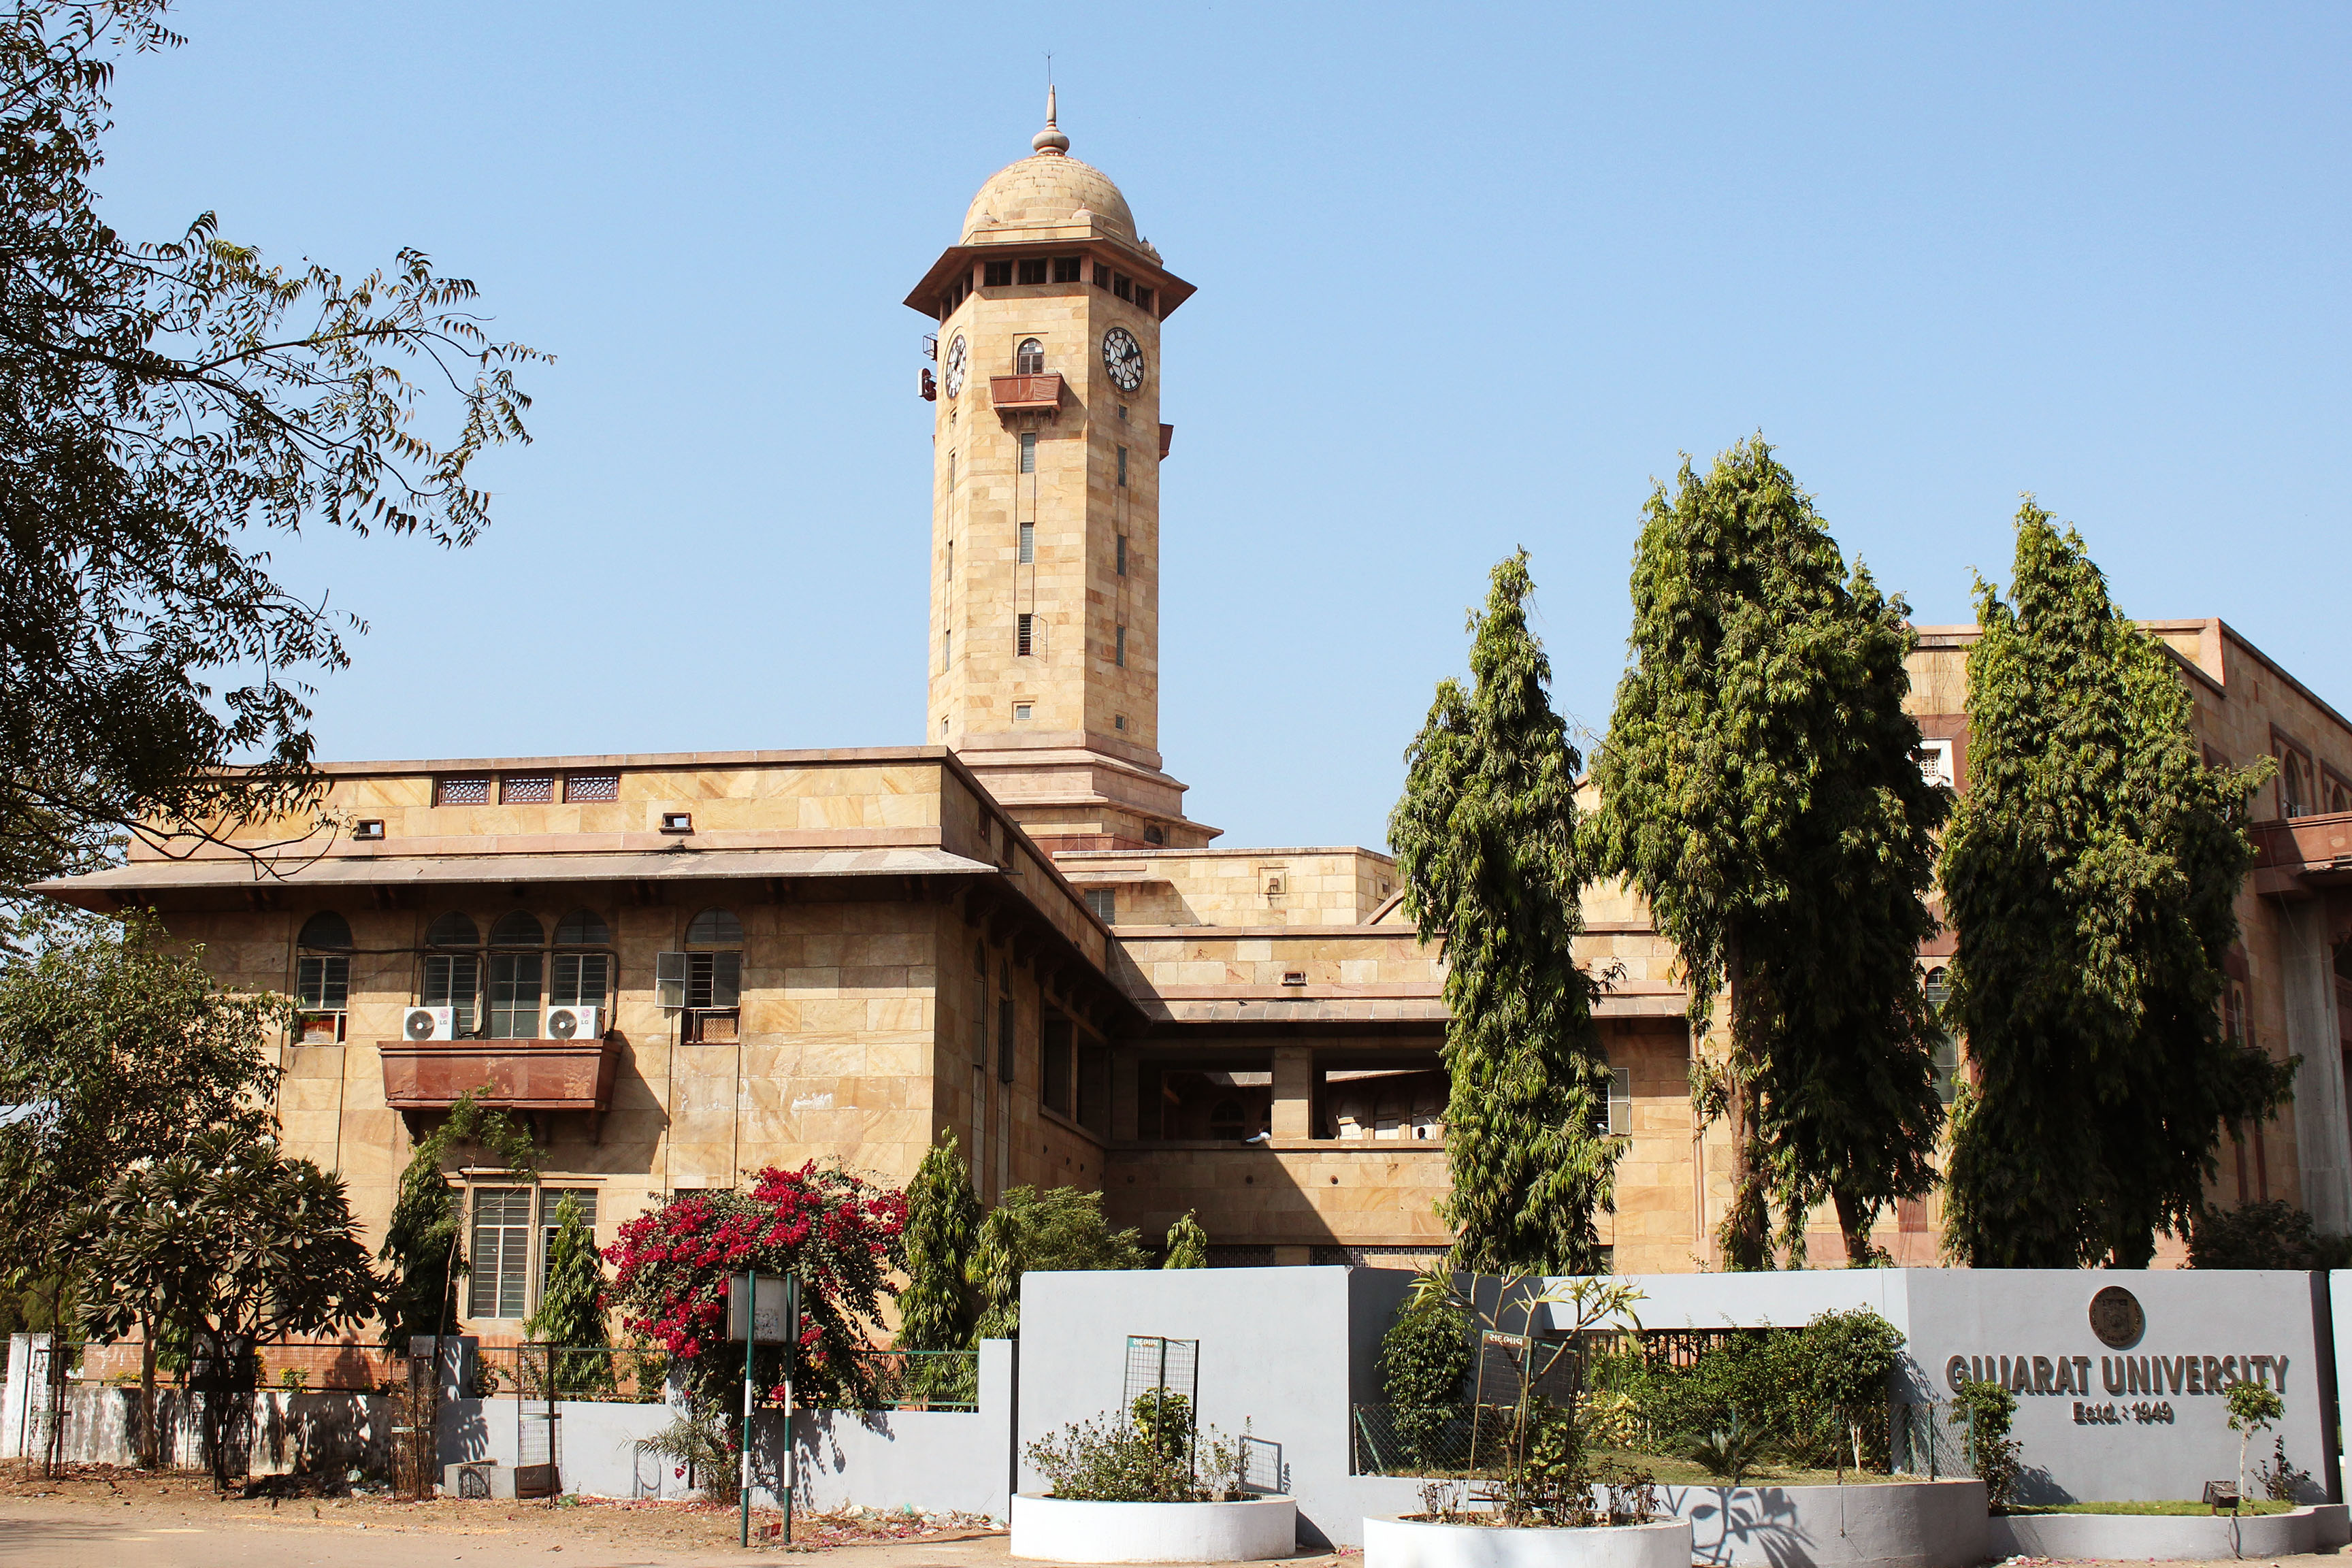 File:Gujarat University Tower Building.jpg - Wikimedia Commons